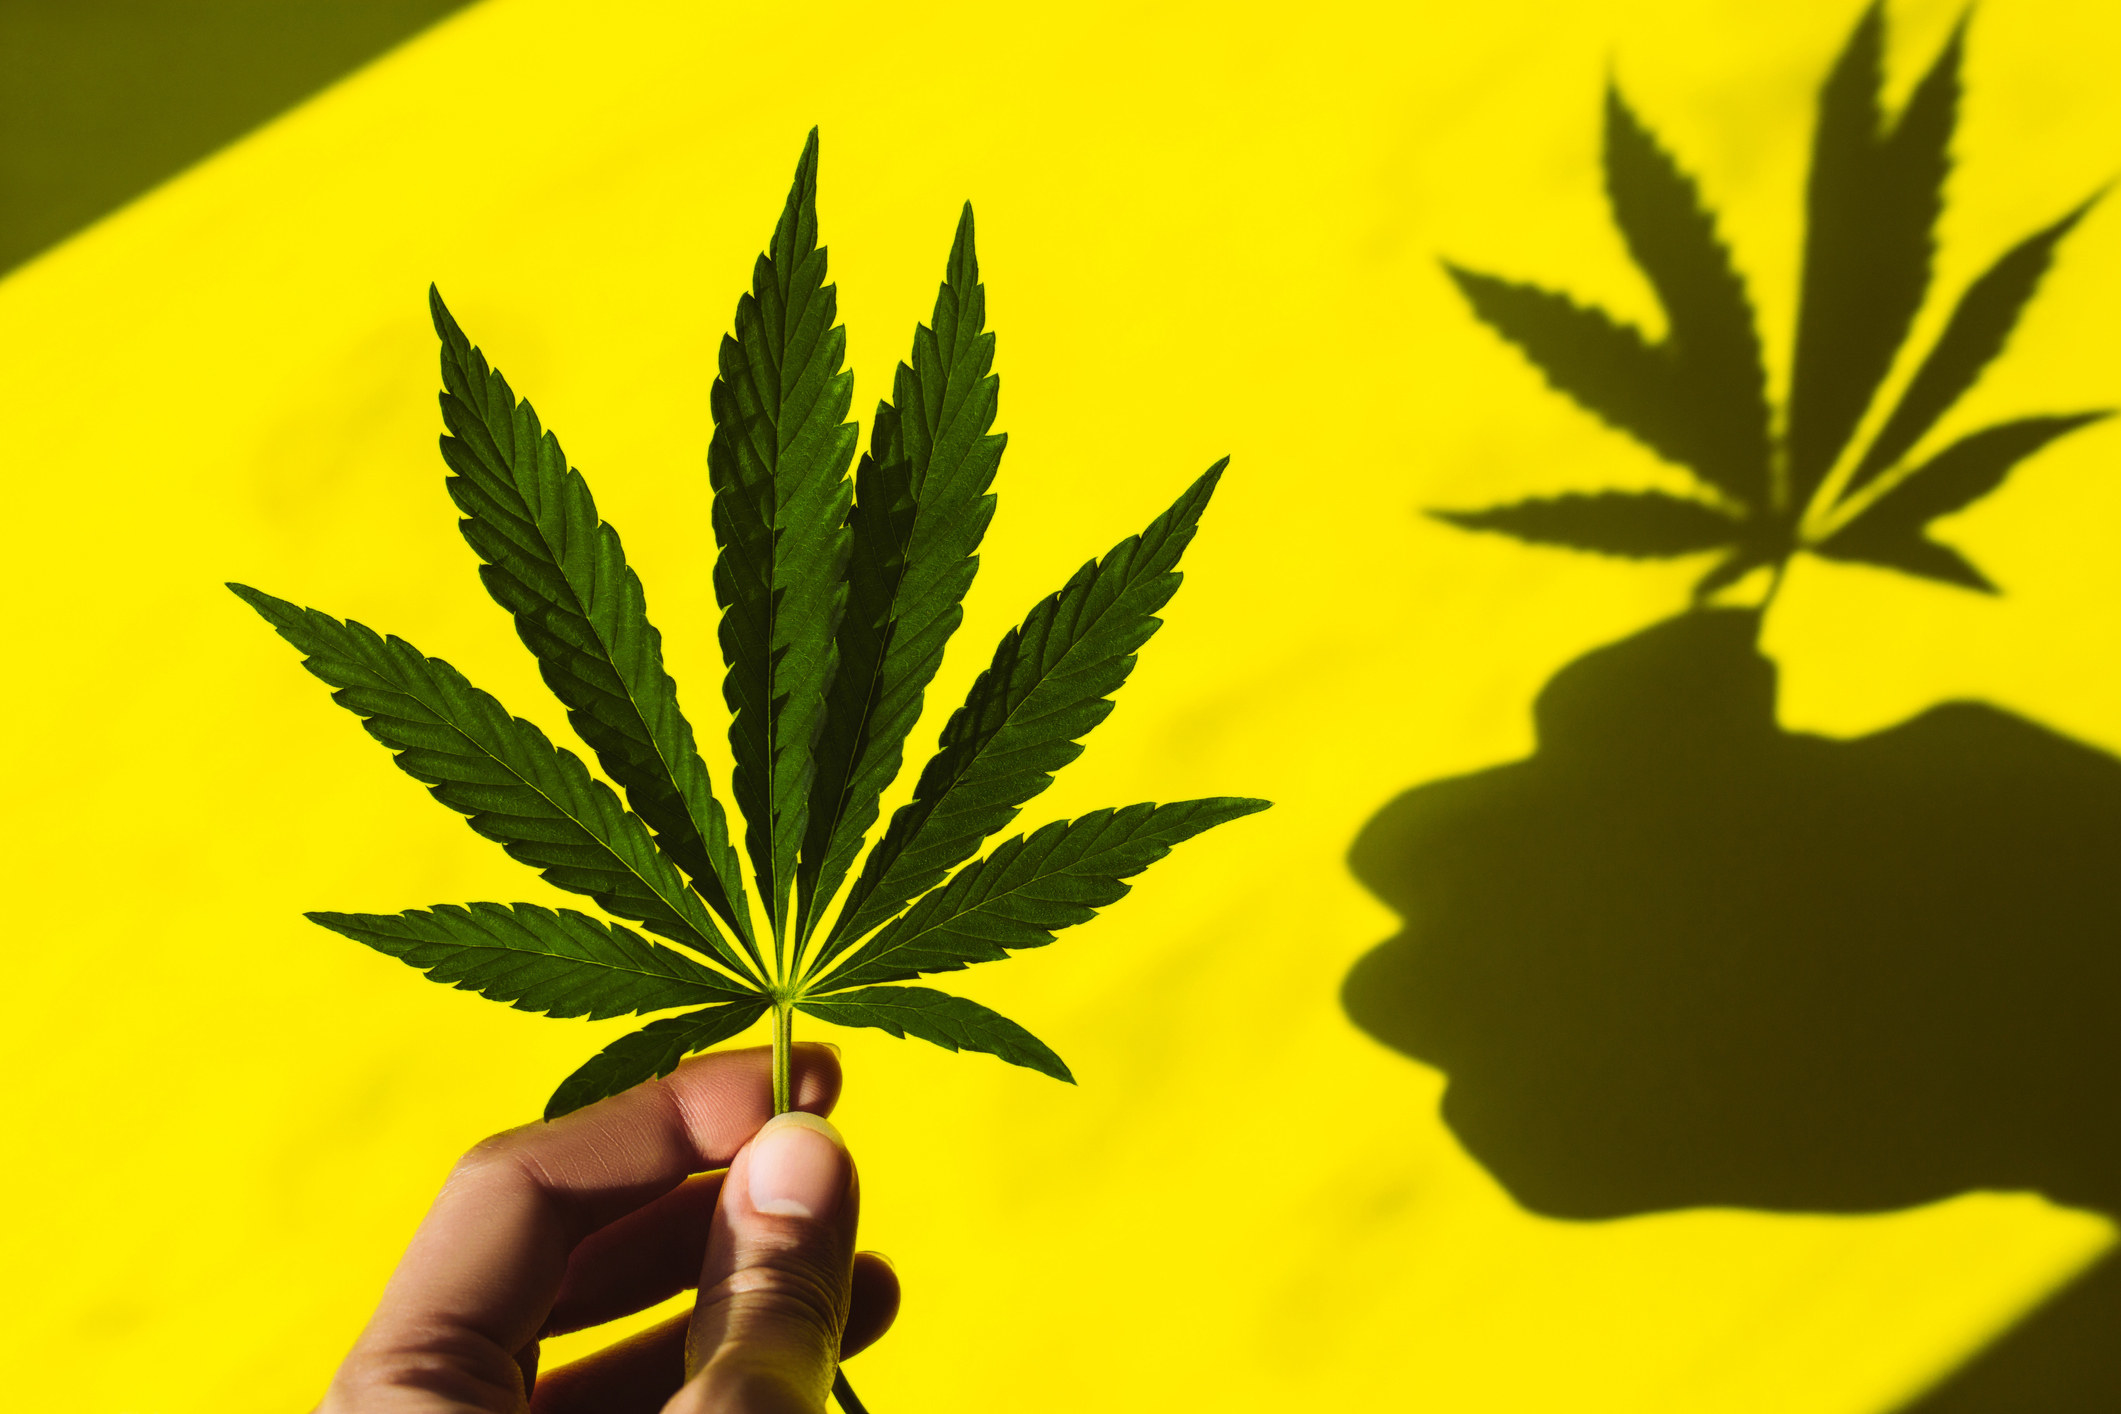 Someone holding up a big marijuana leaf, casting a shadow of hand and leaf behind it